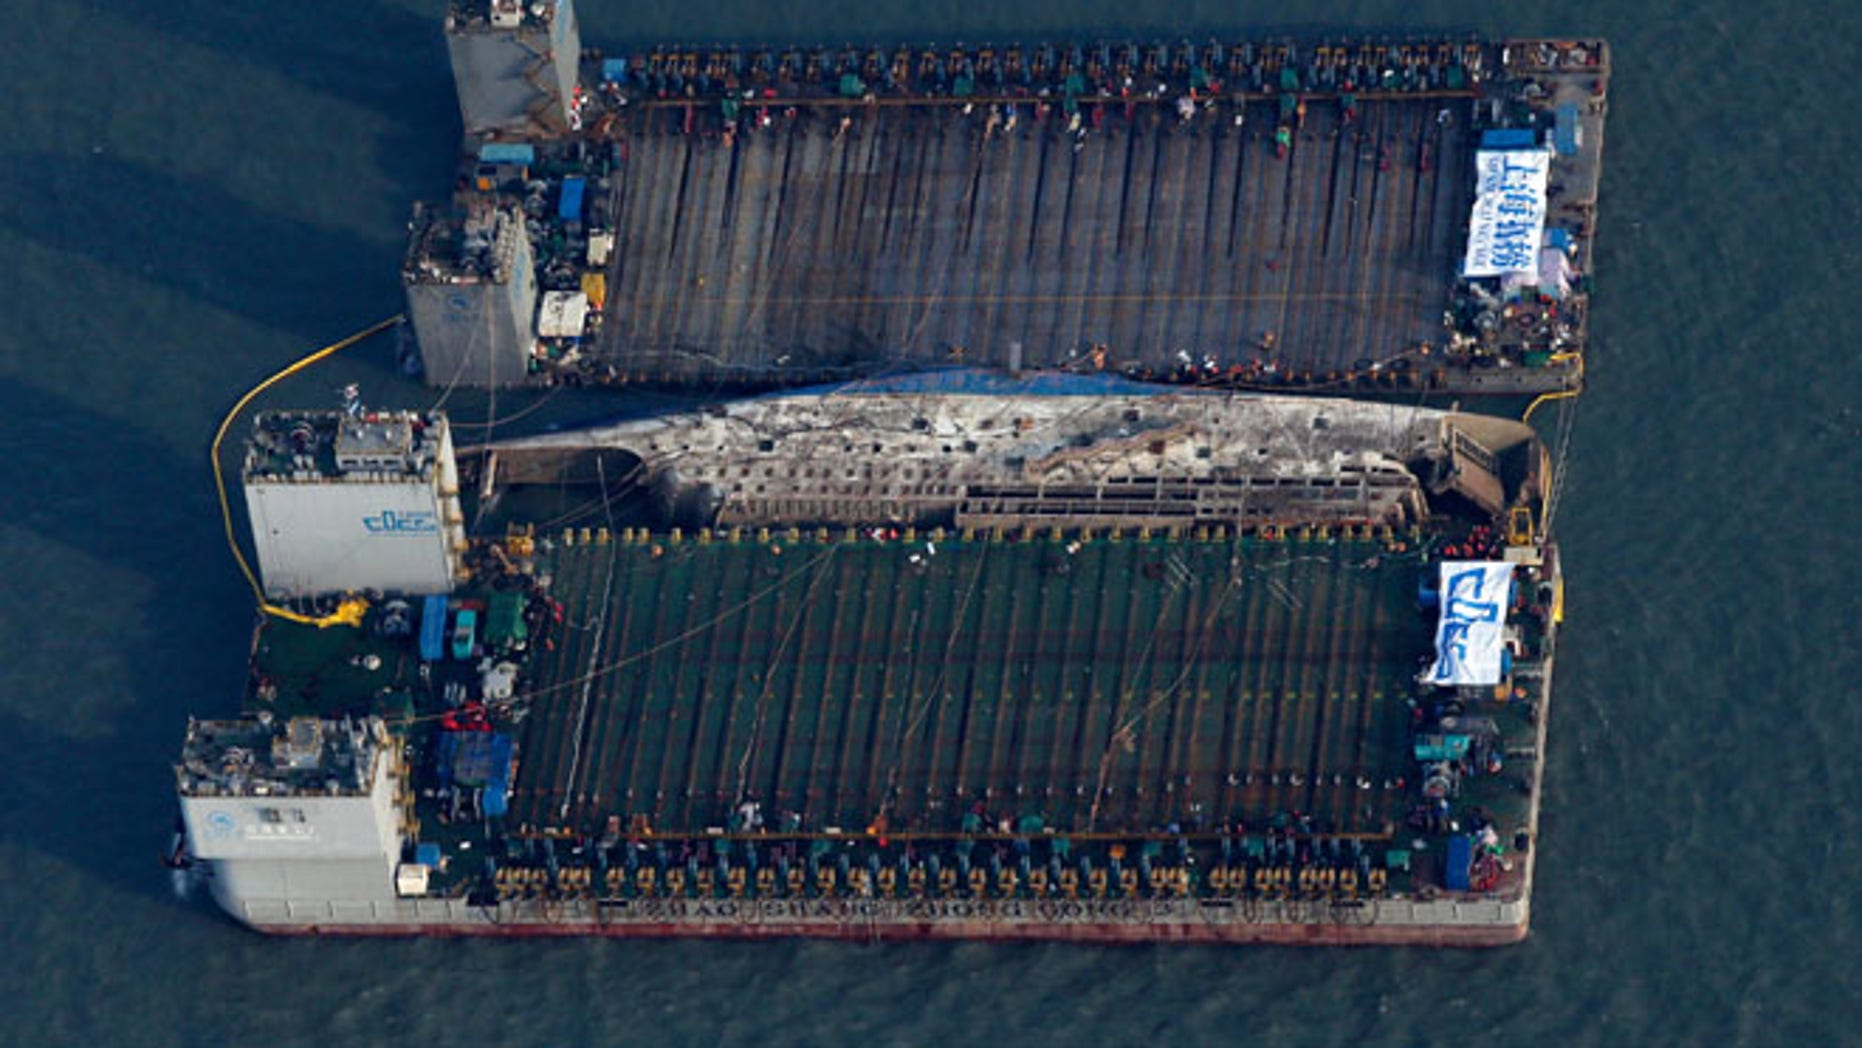 MARCH 23: Workers try to raise the sunken Sewol ferry, center, between two barges during the salvage operation in waters off Jindo, South Korea